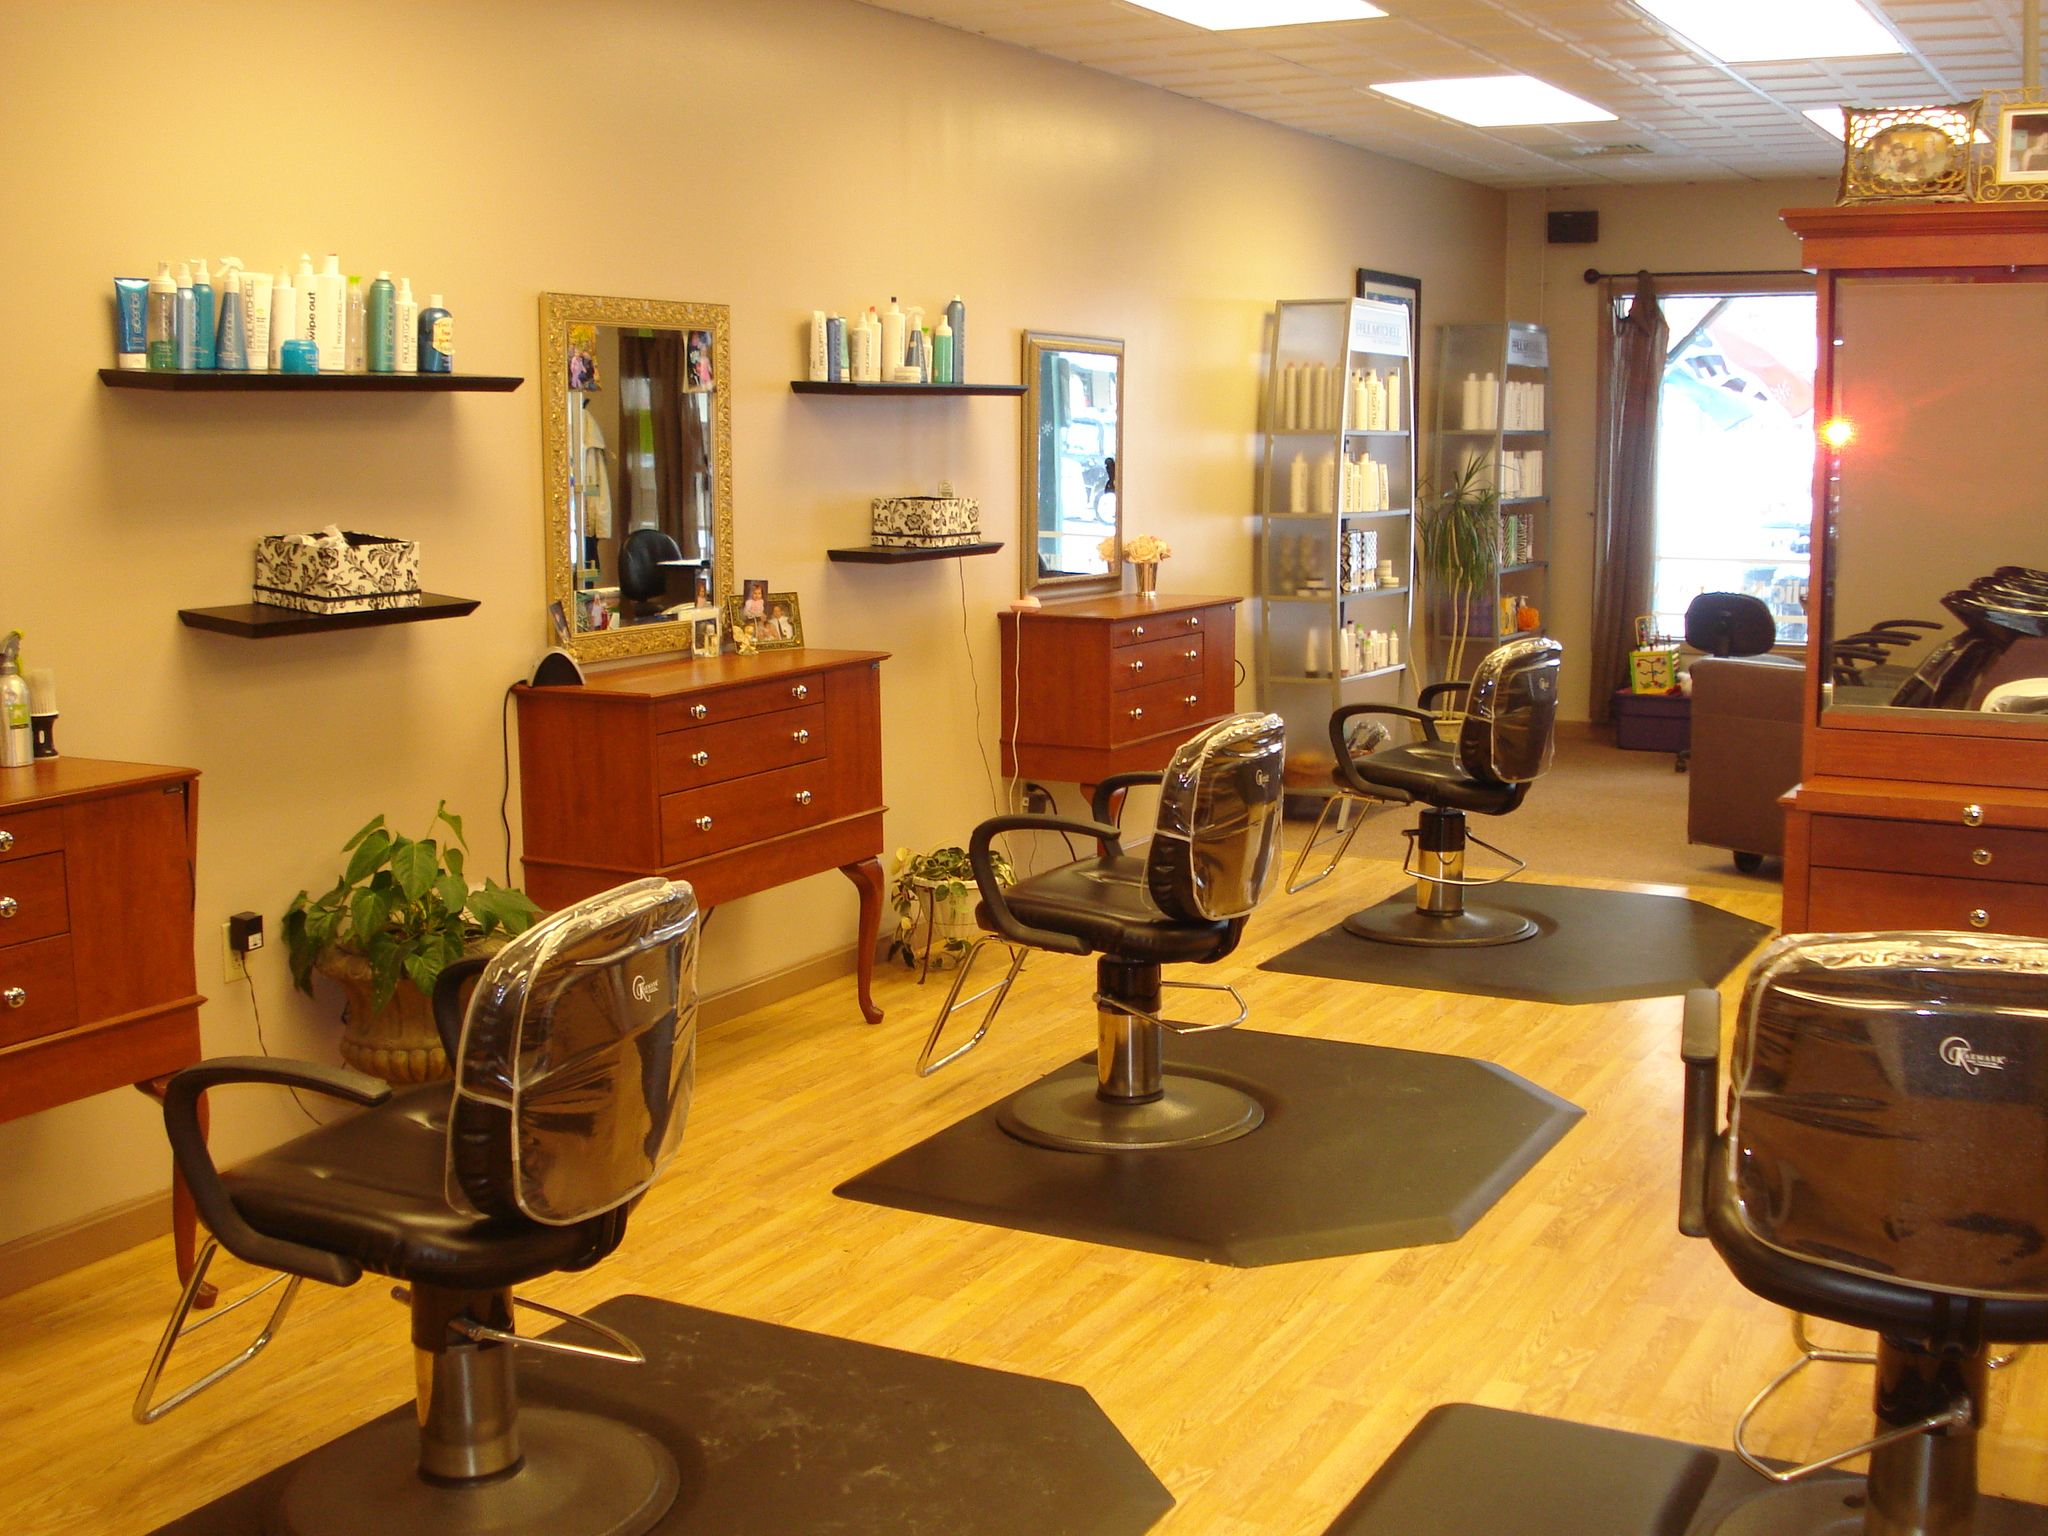 Modern hair salon decorating ideas karens dream salon pinterest